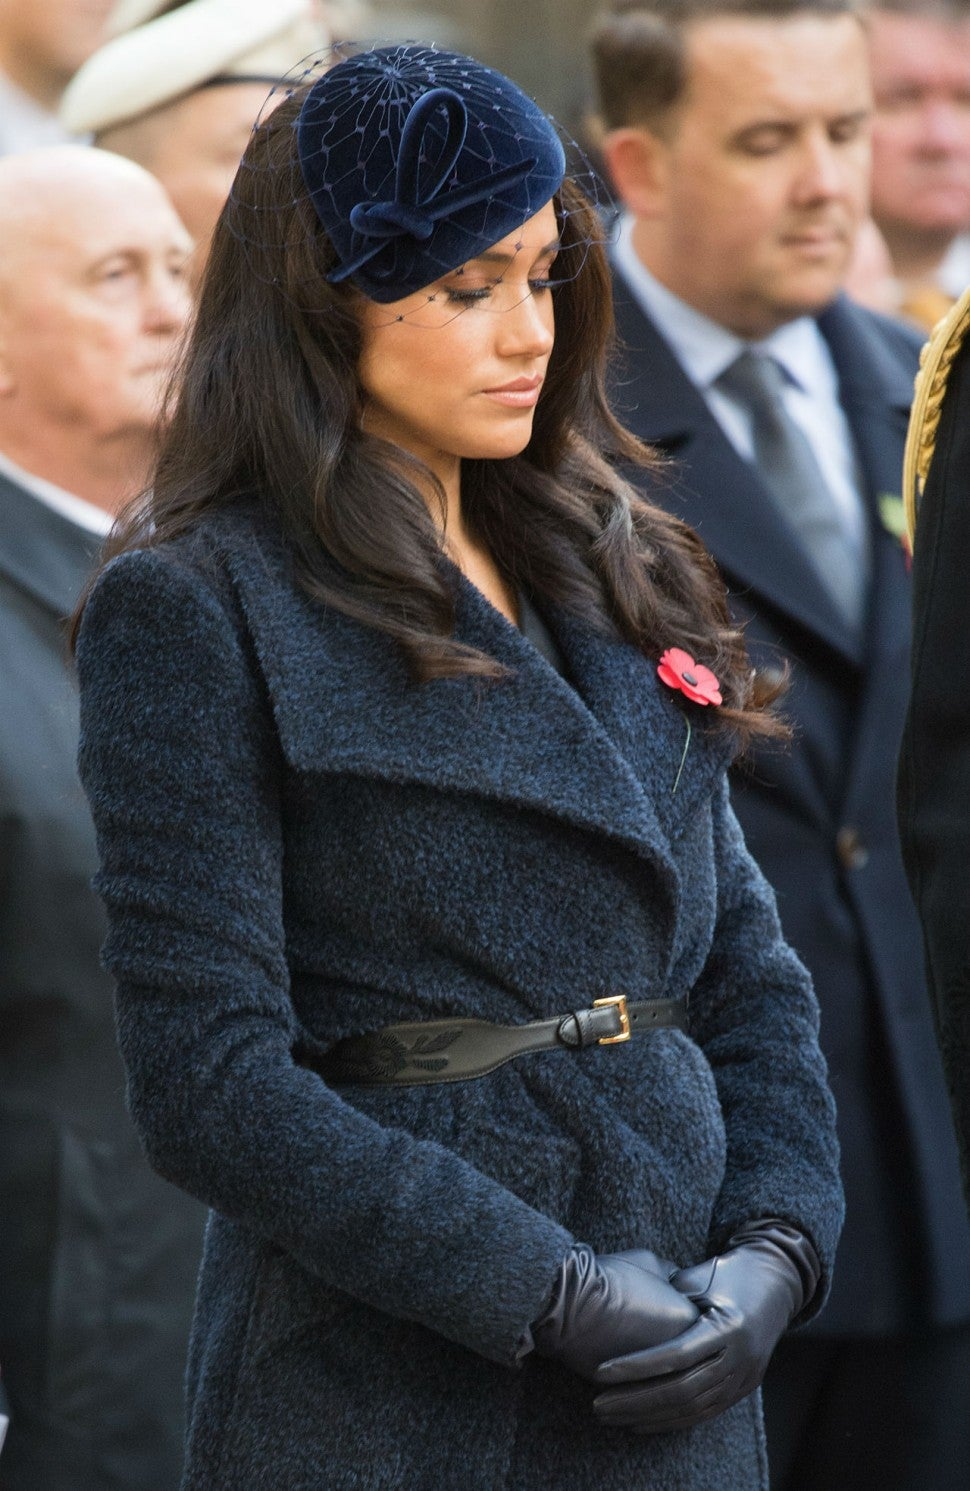 meghan markle and prince harry give archie update while honoring veterans during remembrance day entertainment tonight meghan markle and prince harry give